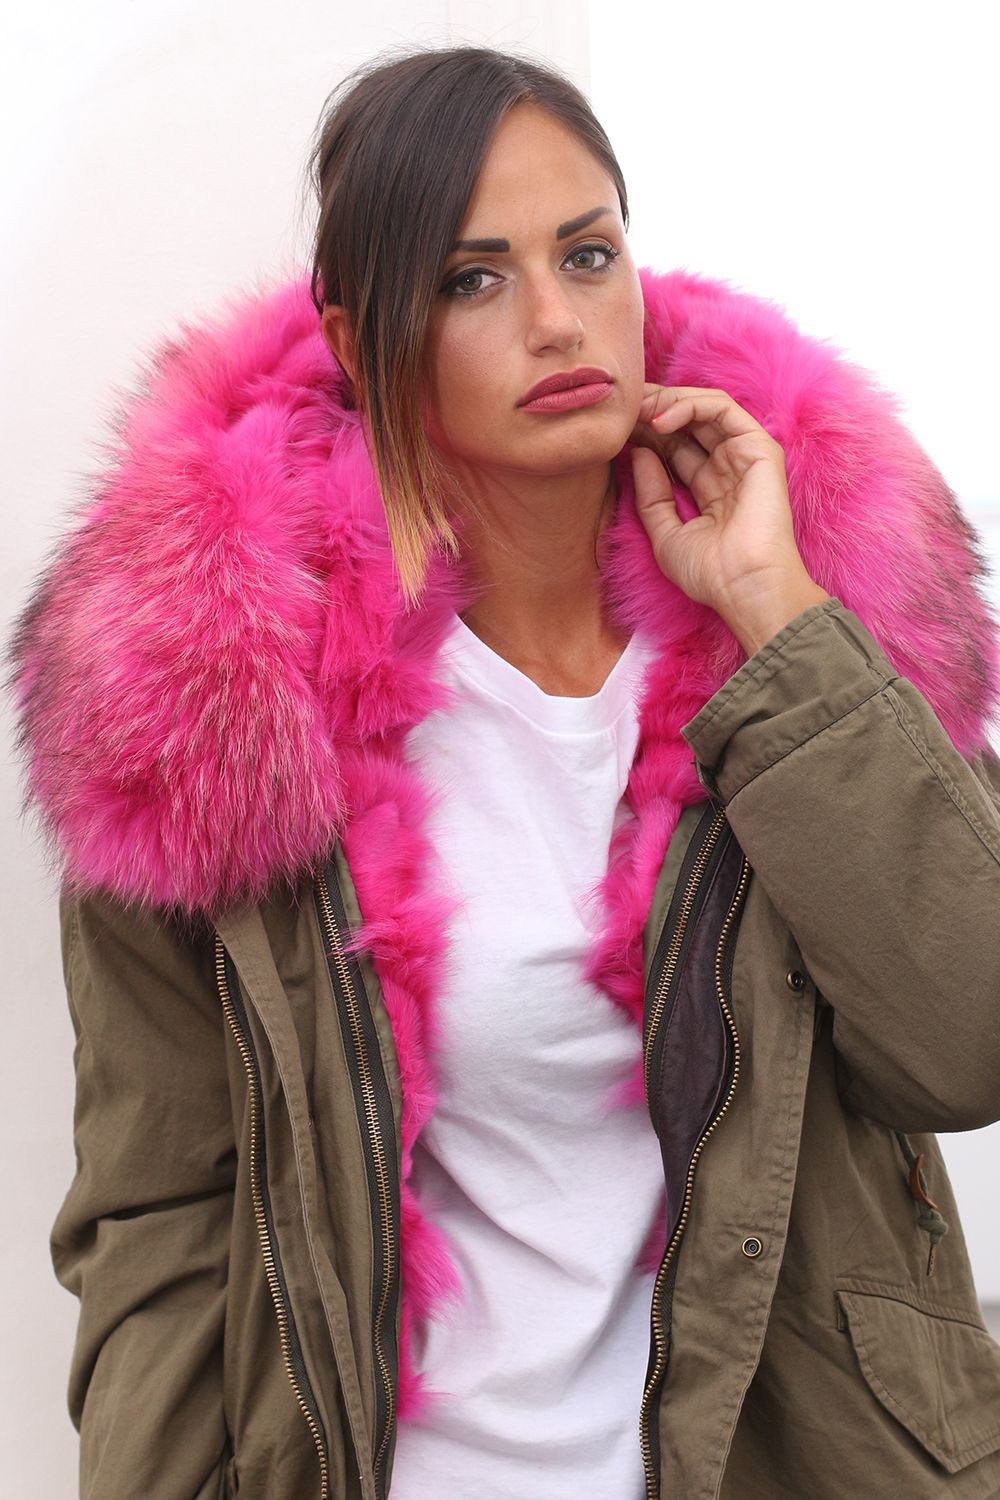 Parka with Fox Fur. Made in Italy. Color: Green-Pink; Hood; Long sleeves with quilted lining and button fastening cuffs; Flapped front pockets; Internal drawstring waist and hem; Curved back hem, centre-back hem slit; Concealed zip centre-front fastening; Length: 85 cm; #parka #elsafur #fur #furs #furcoat #coat #mink #minkcoat #cappotto #peliccia #pellicce